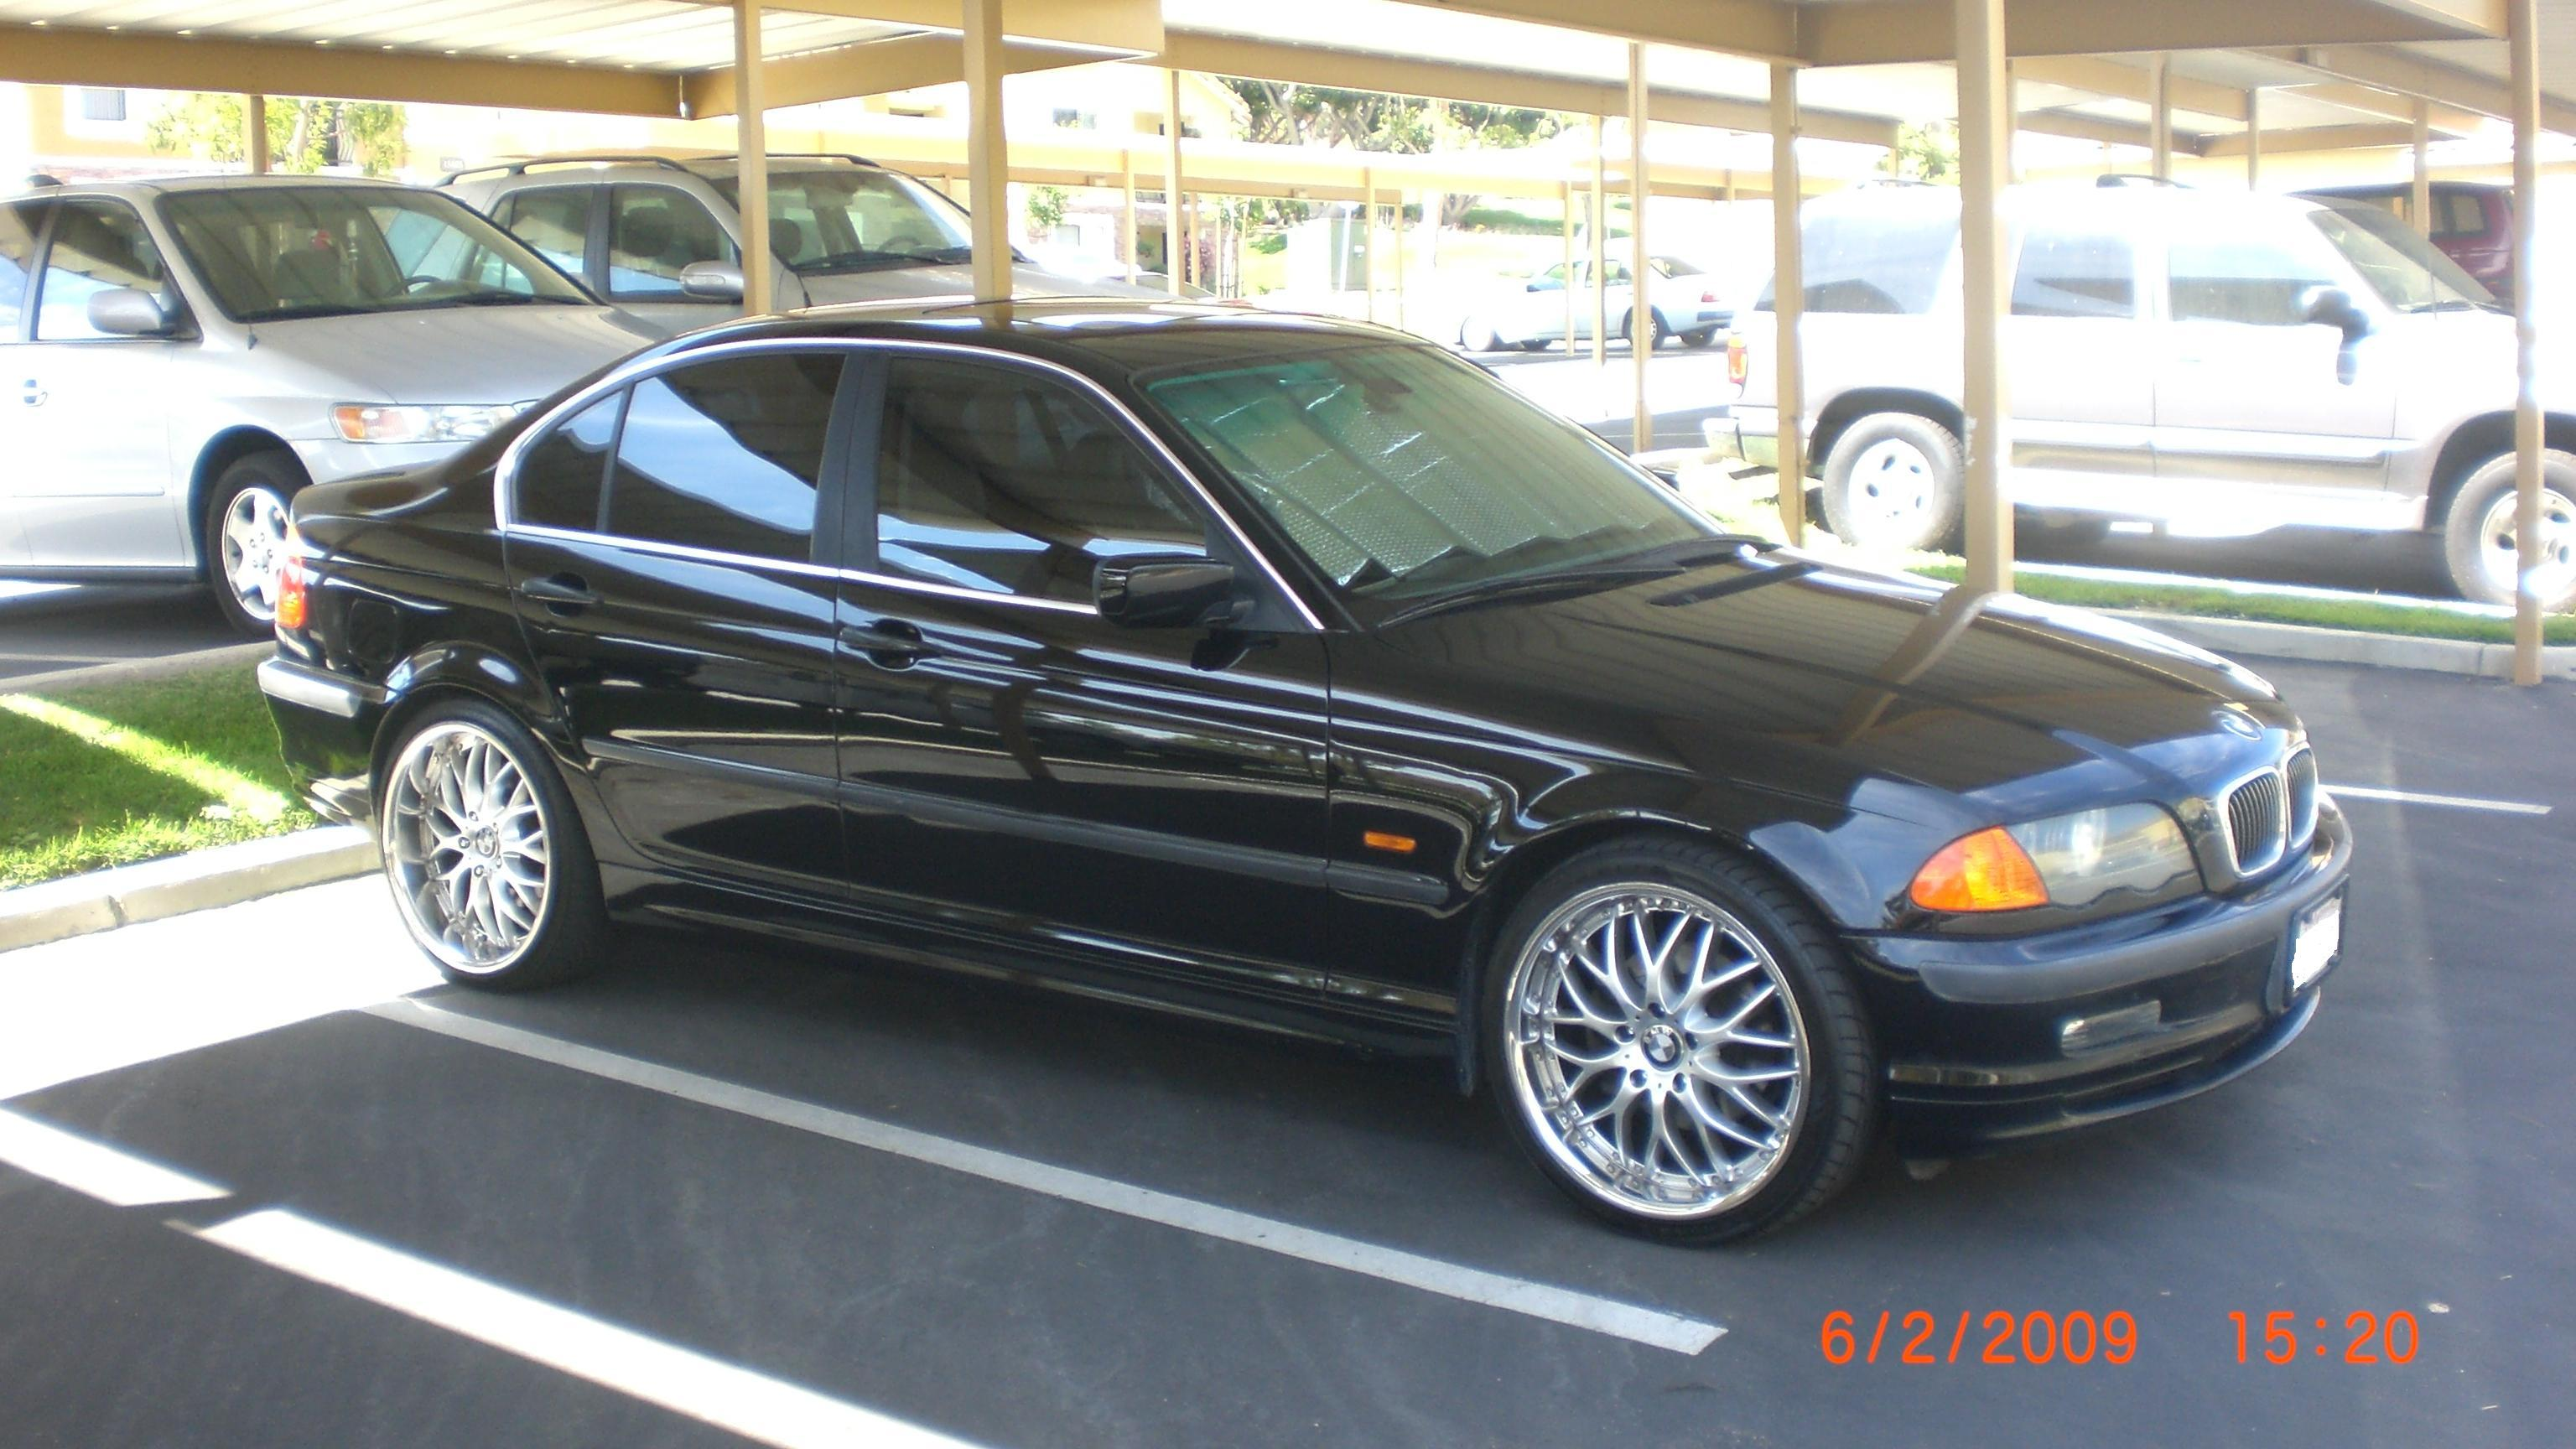 328i e46 1999 bmw 3 series specs photos modification. Black Bedroom Furniture Sets. Home Design Ideas